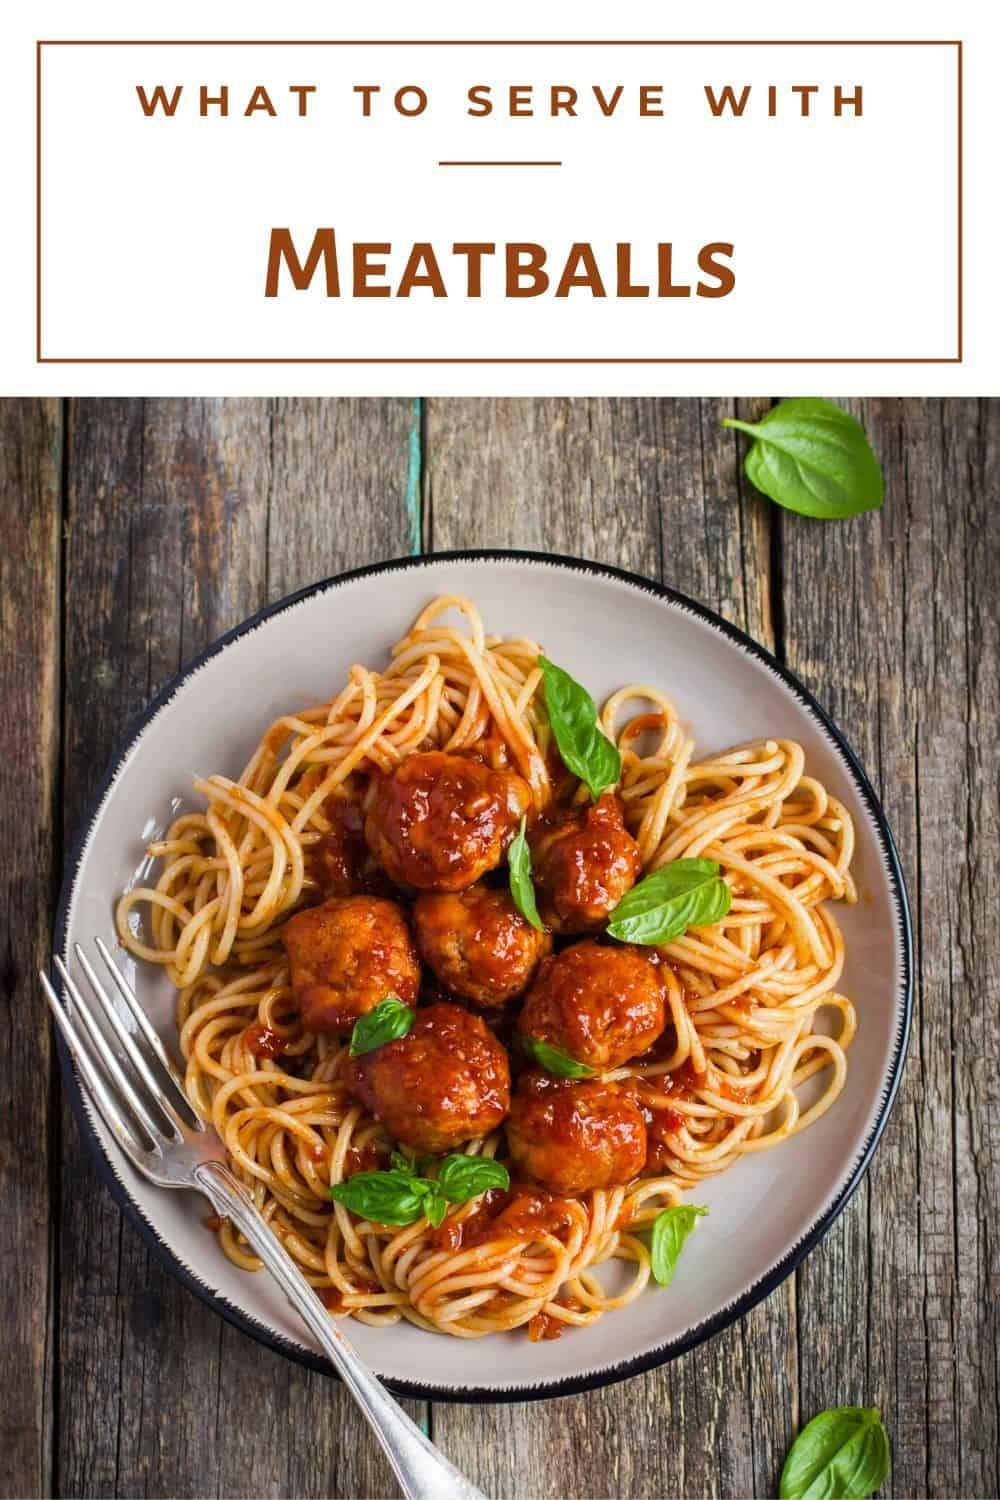 What To Serve With Meatballs So That Your Meal Is Yummy Recipe Meatball Side Dishes Chicken Parmesan Meatballs Parmesan Meatballs